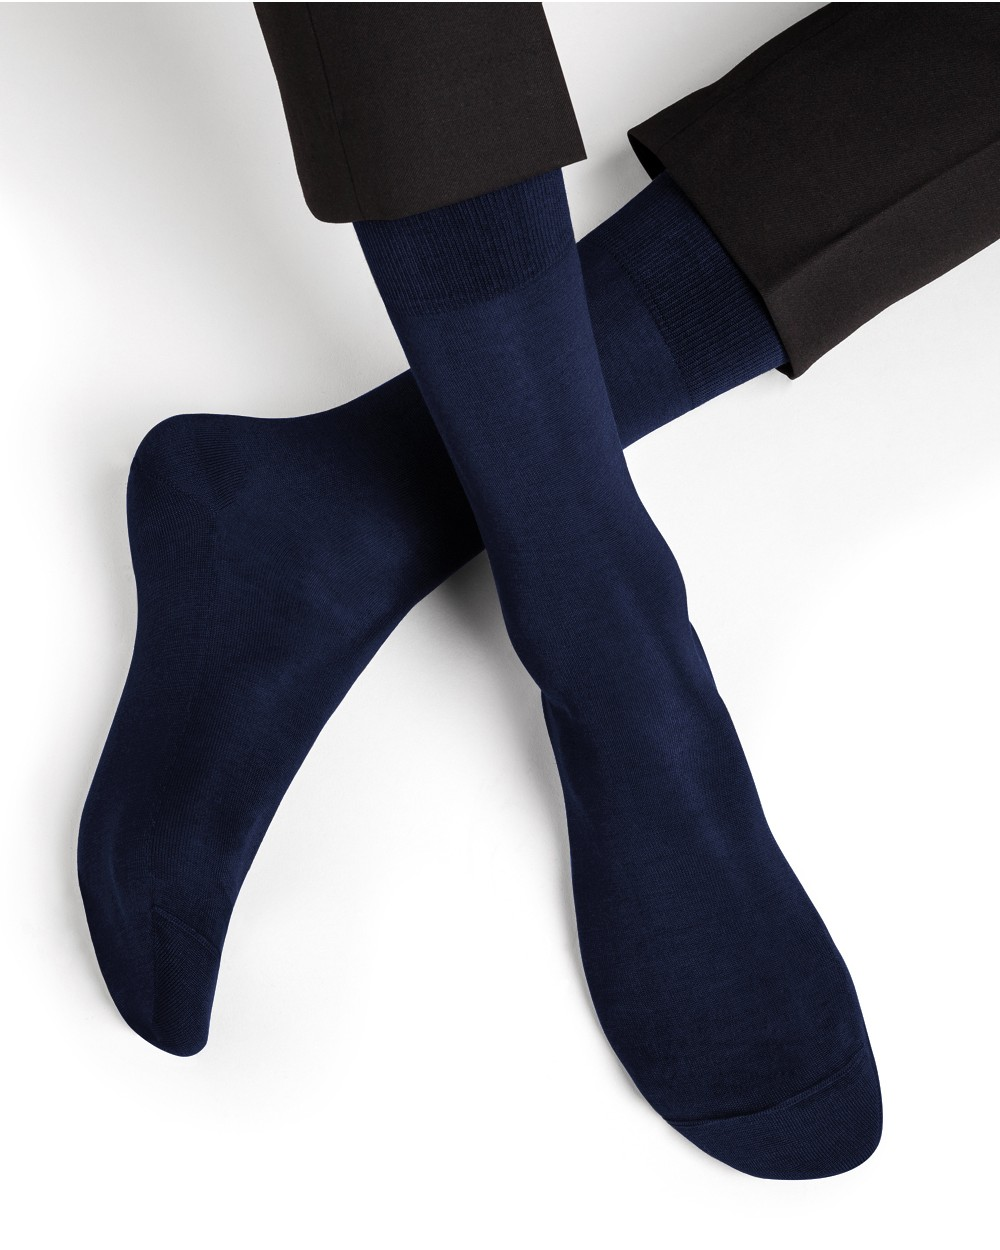 Fine ultimate 100% mercerised cotton socks